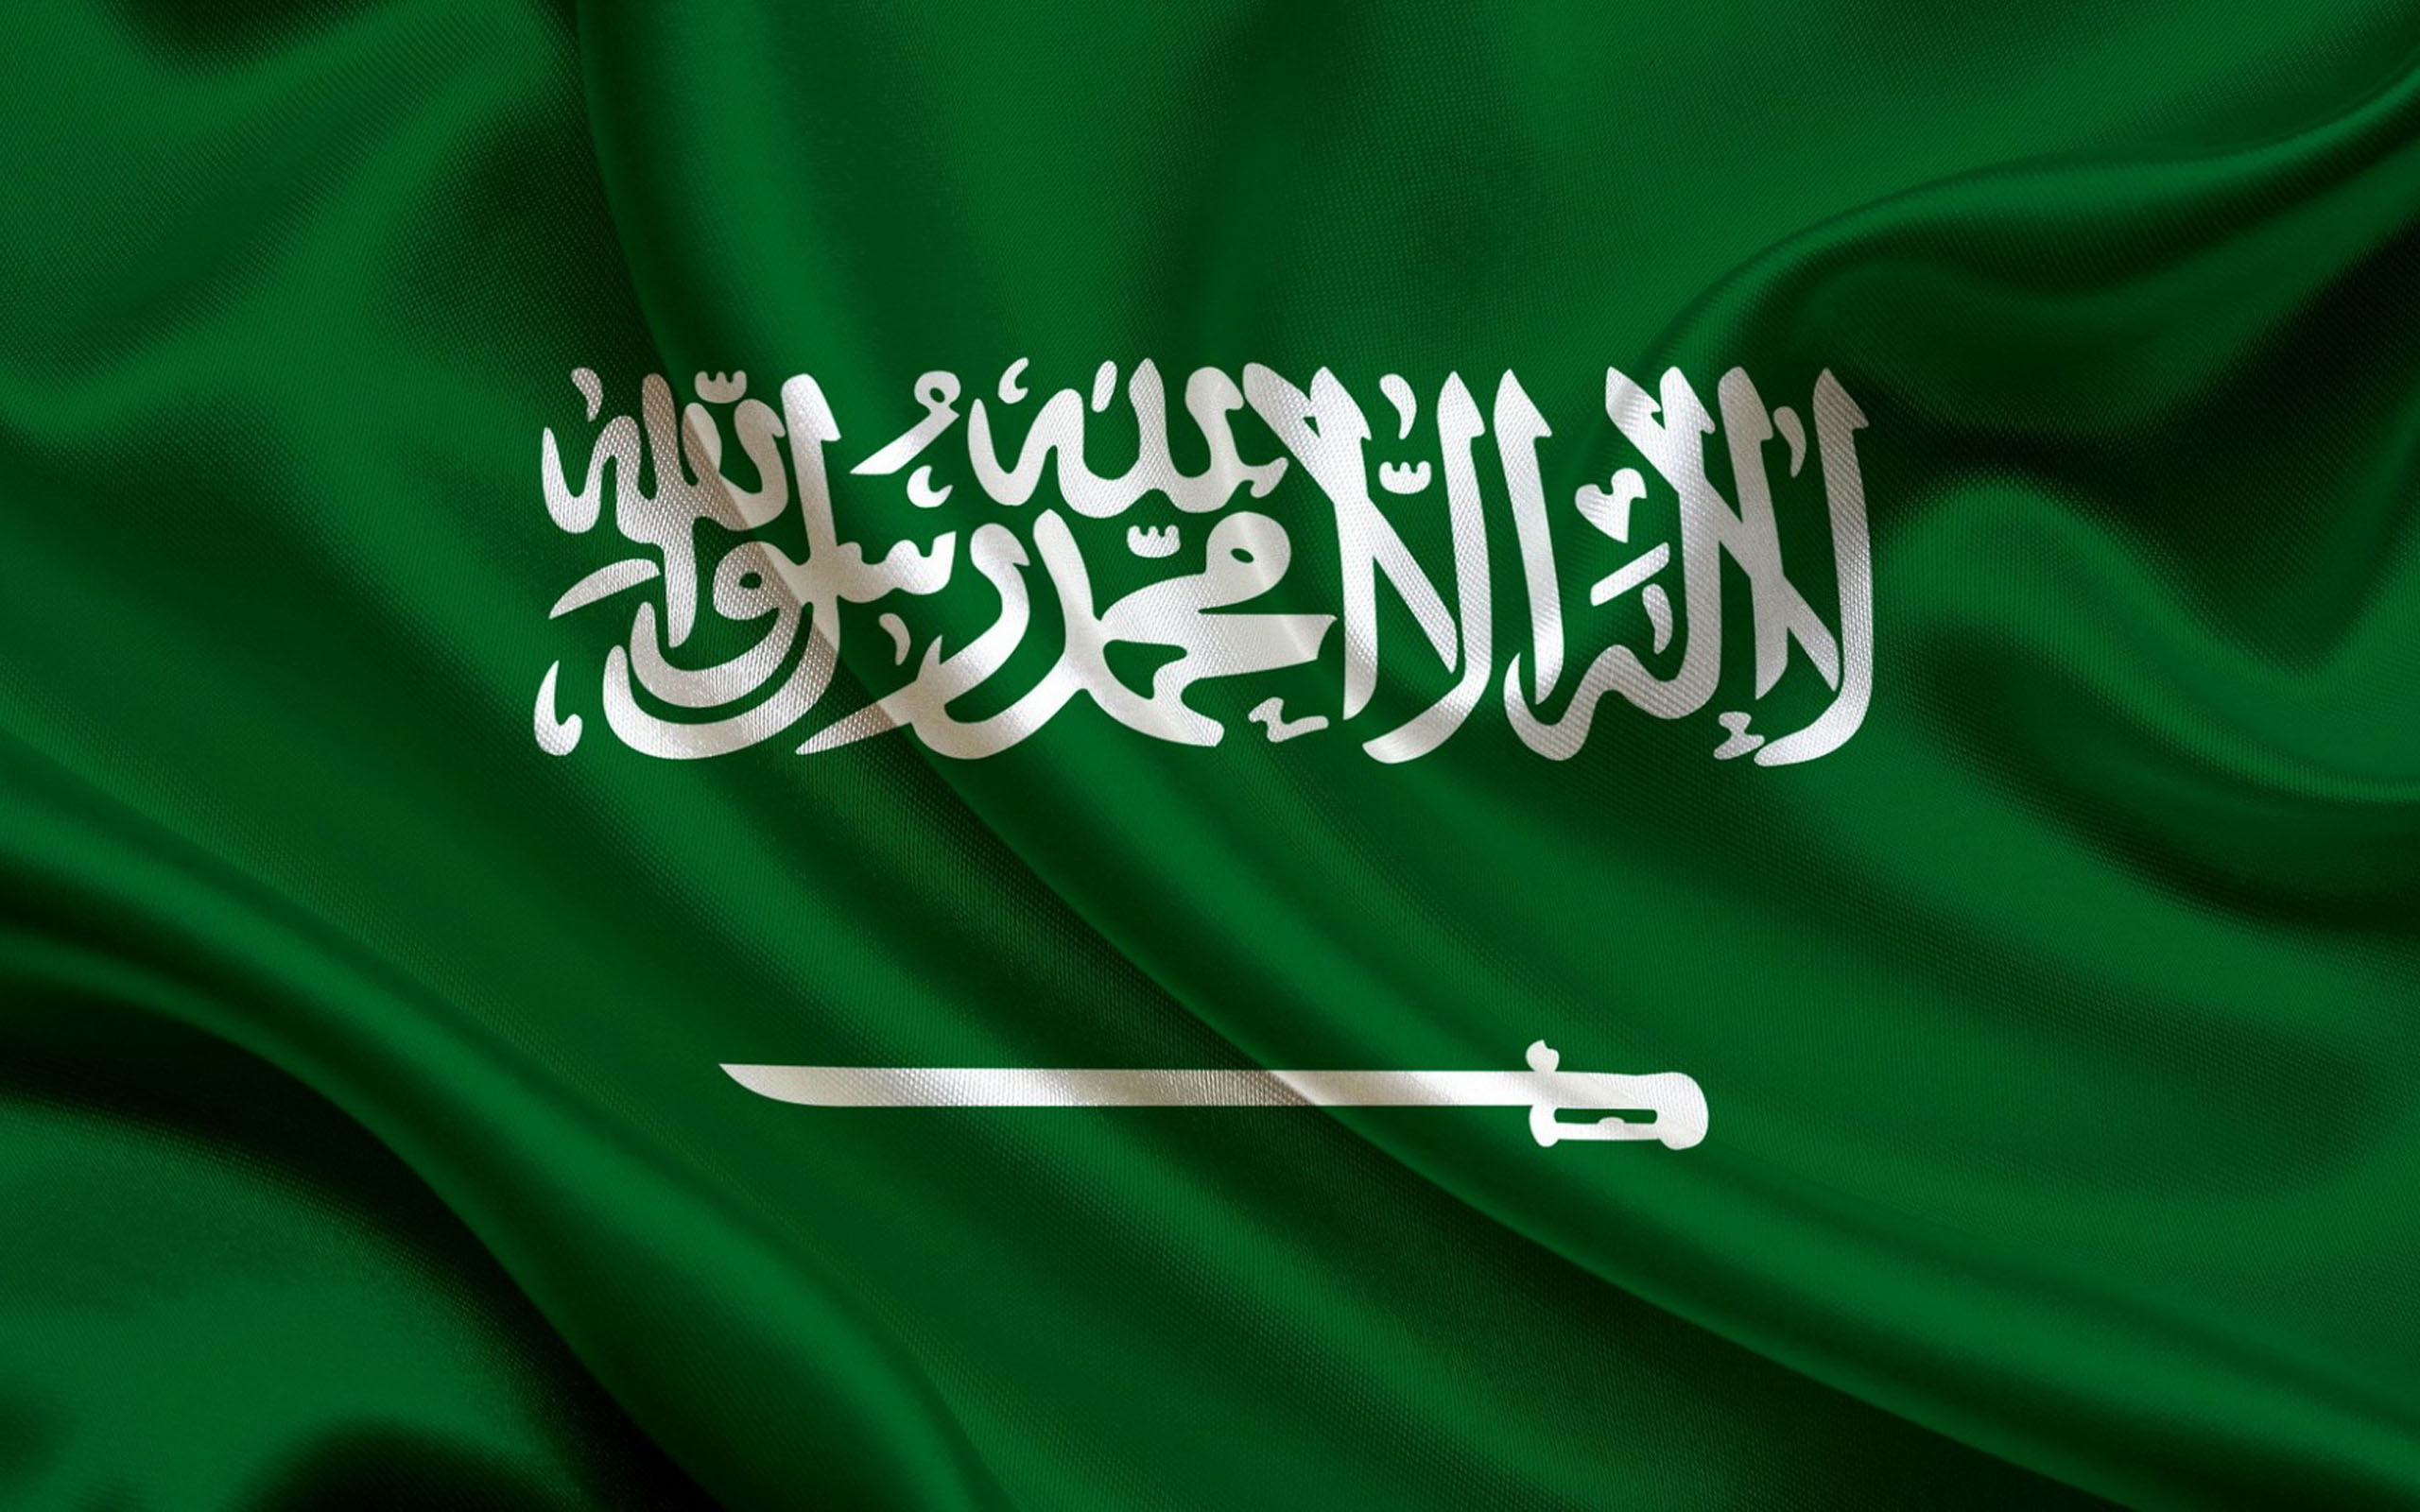 Saudi Arabia | Flags of countries